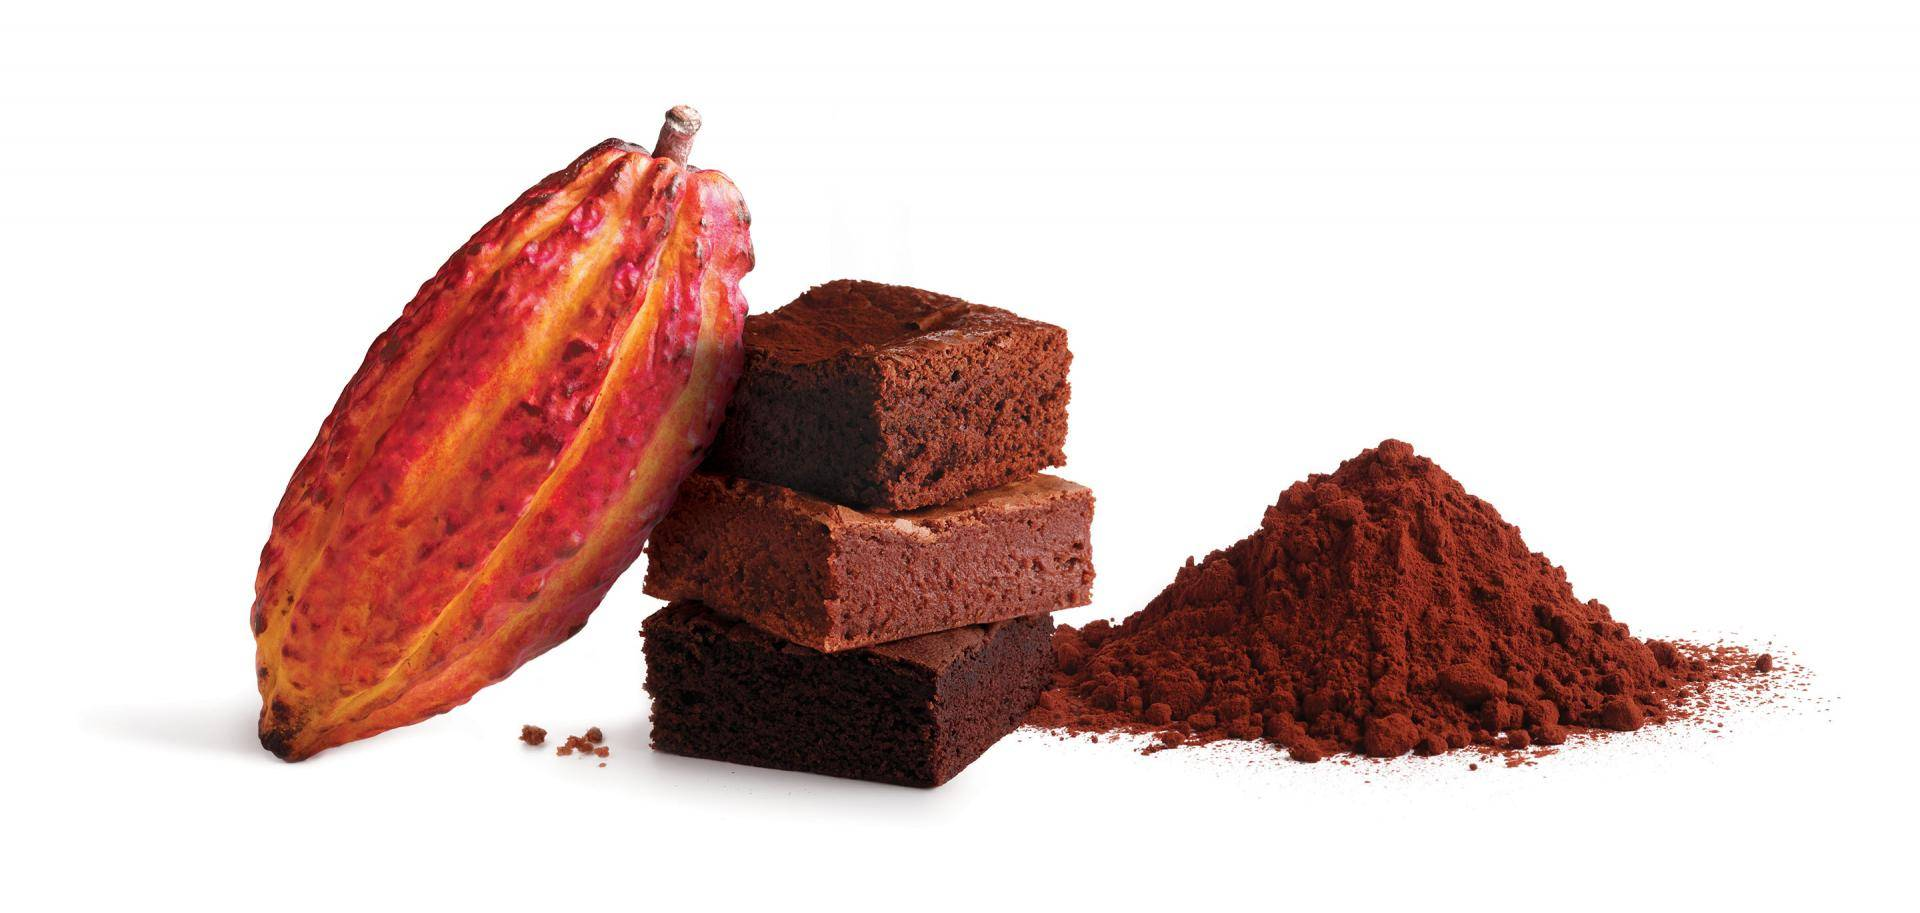 Bakery and Pastry applications with Bensdorp cocoa powder